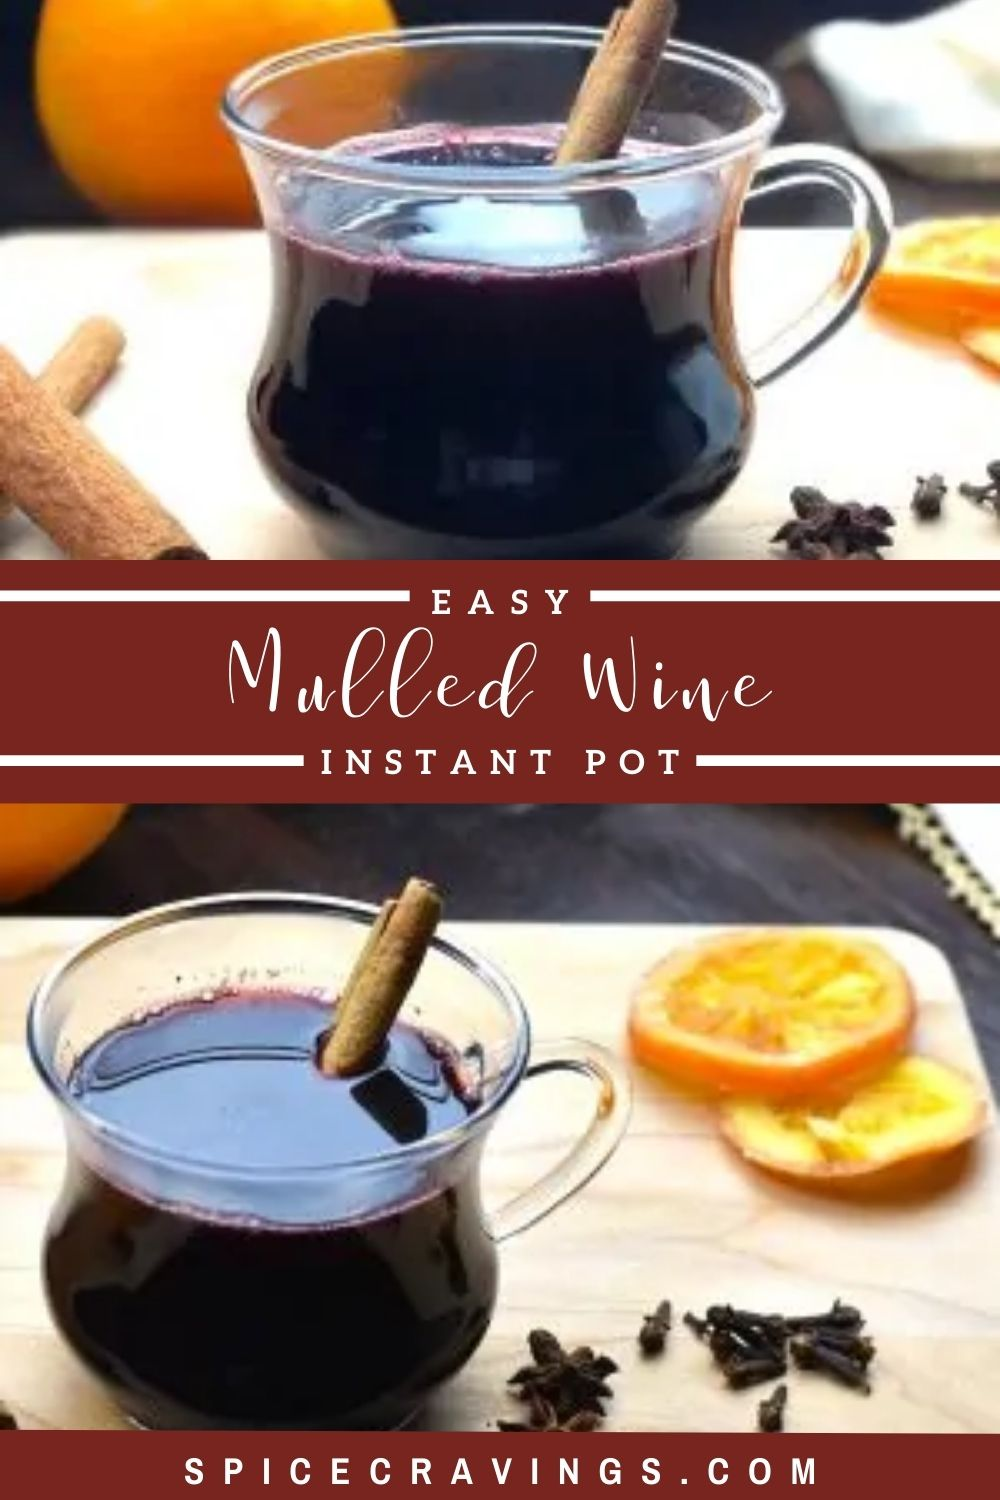 Easy Mulled Wine Recipe In 2020 Mulled Wine Recipe Flavored Drinks Mulled Wine